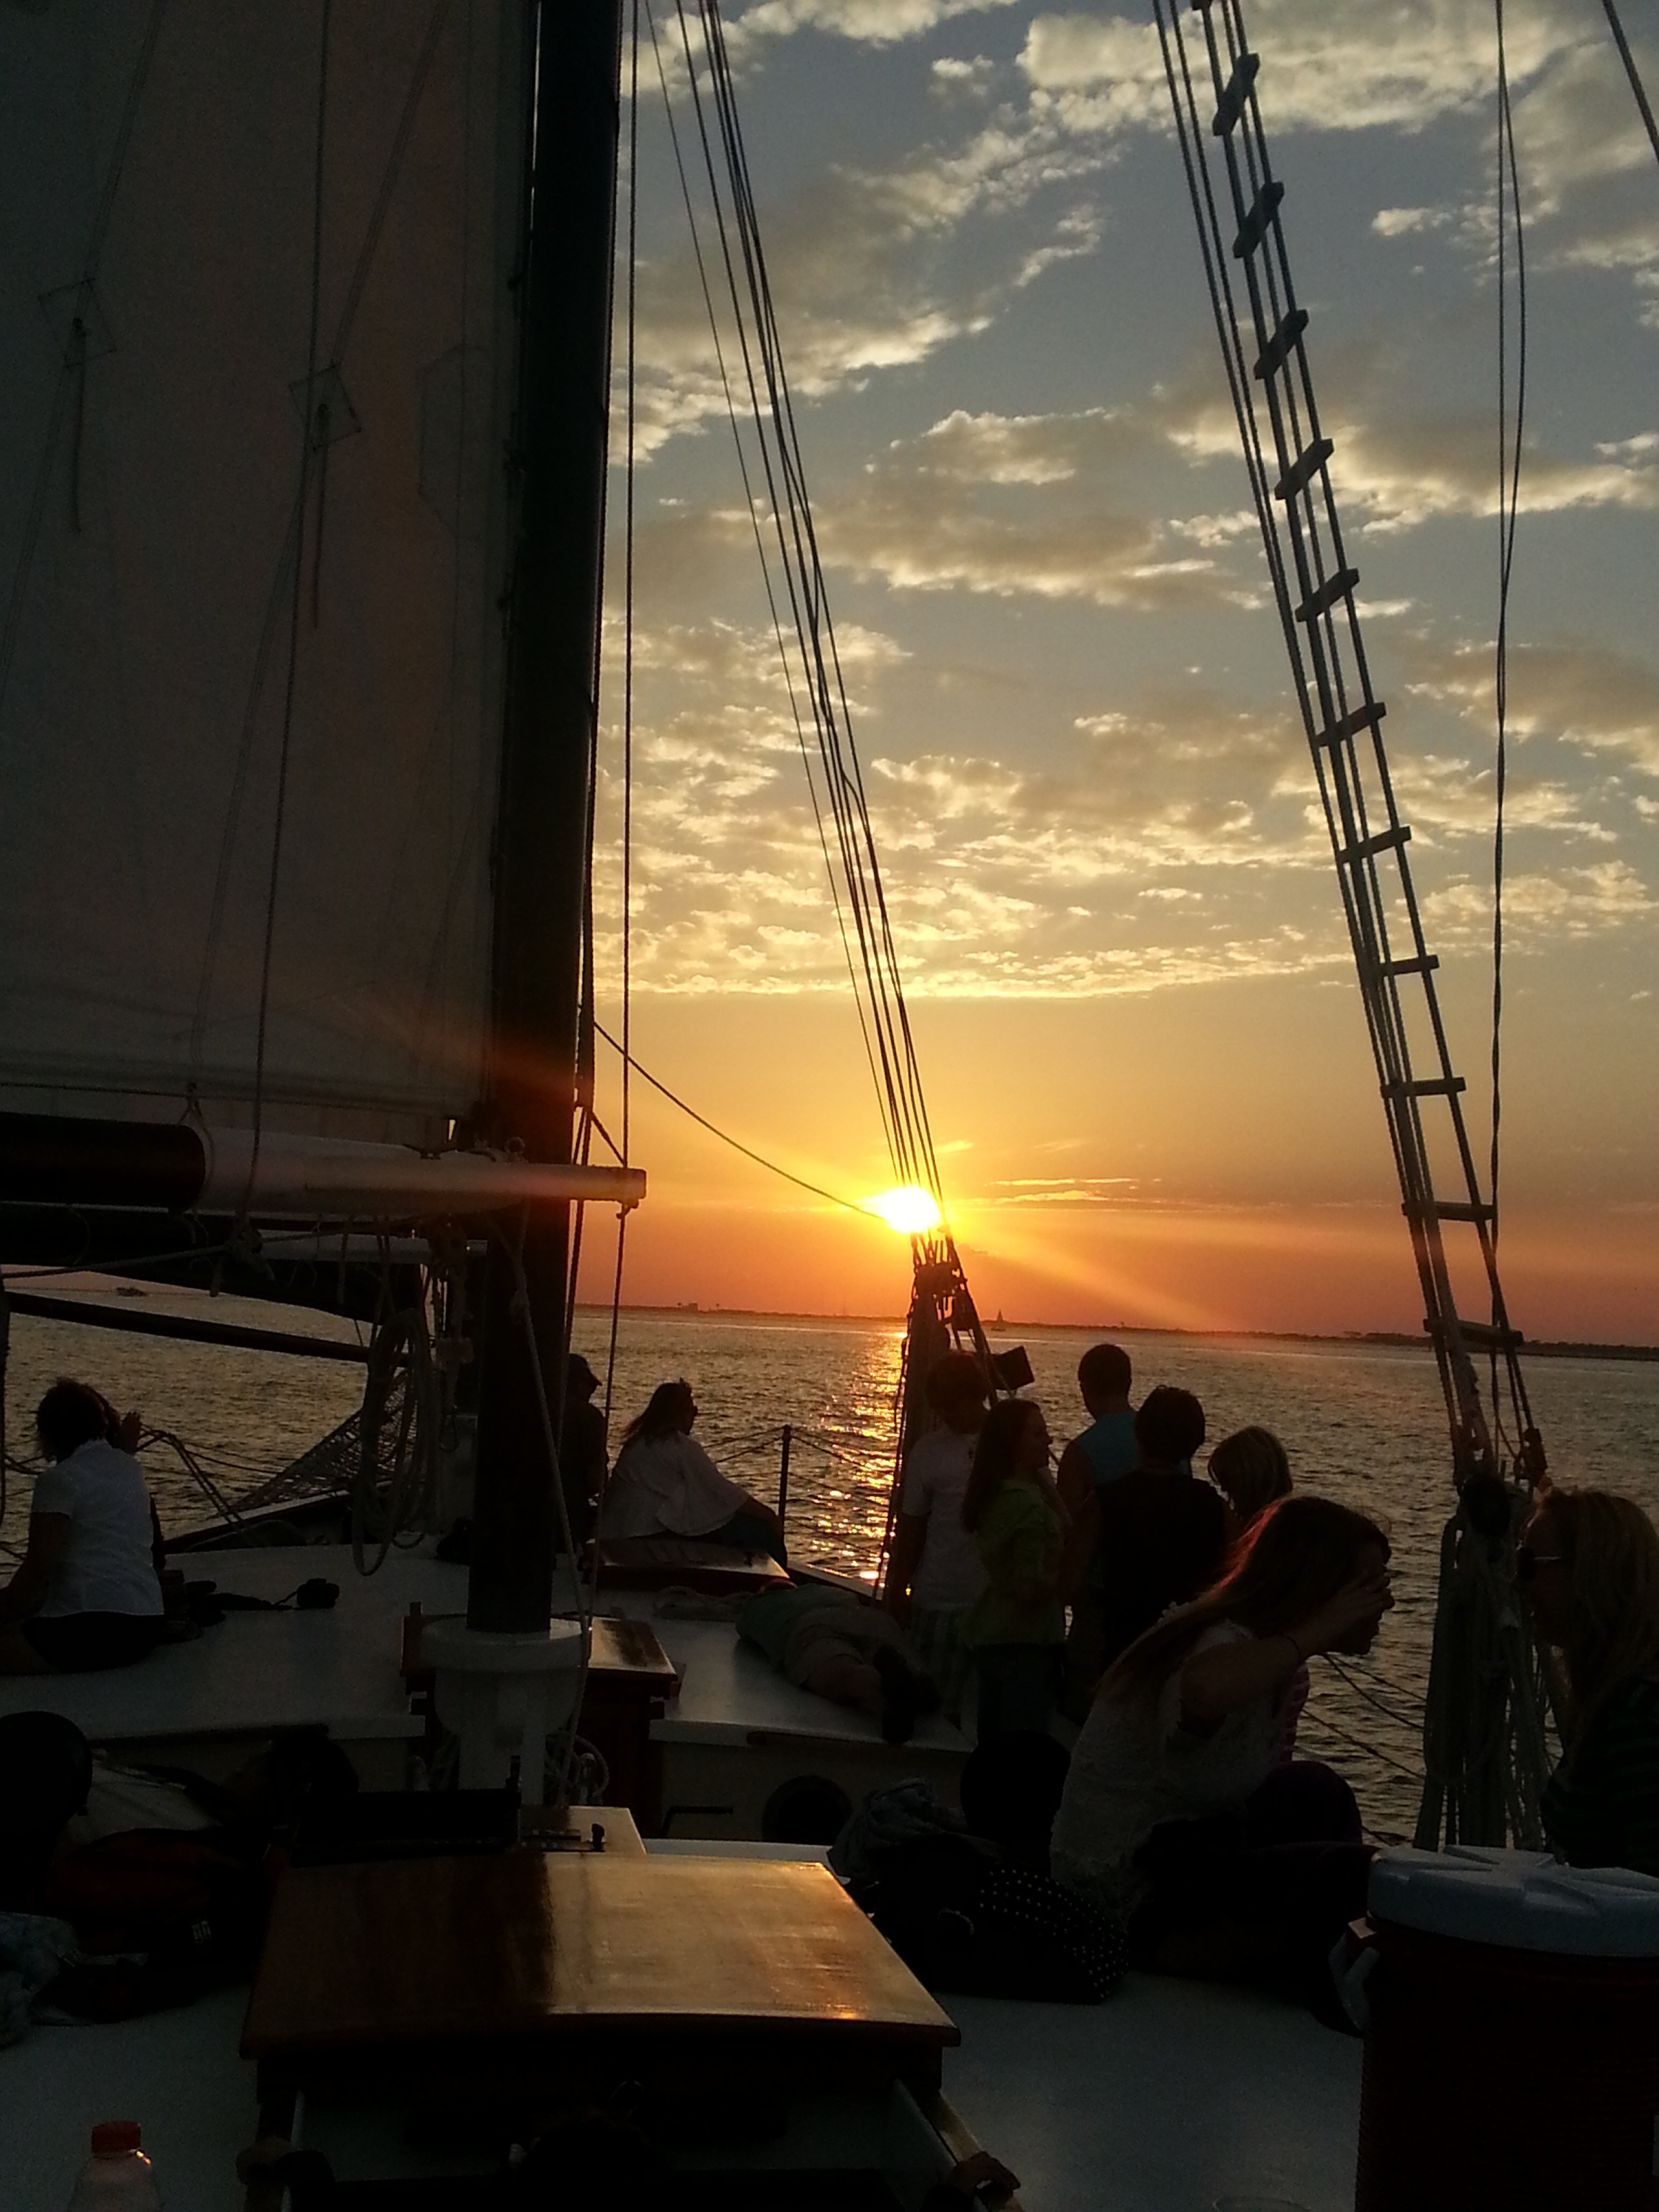 Destin Fl sunset sailing trip